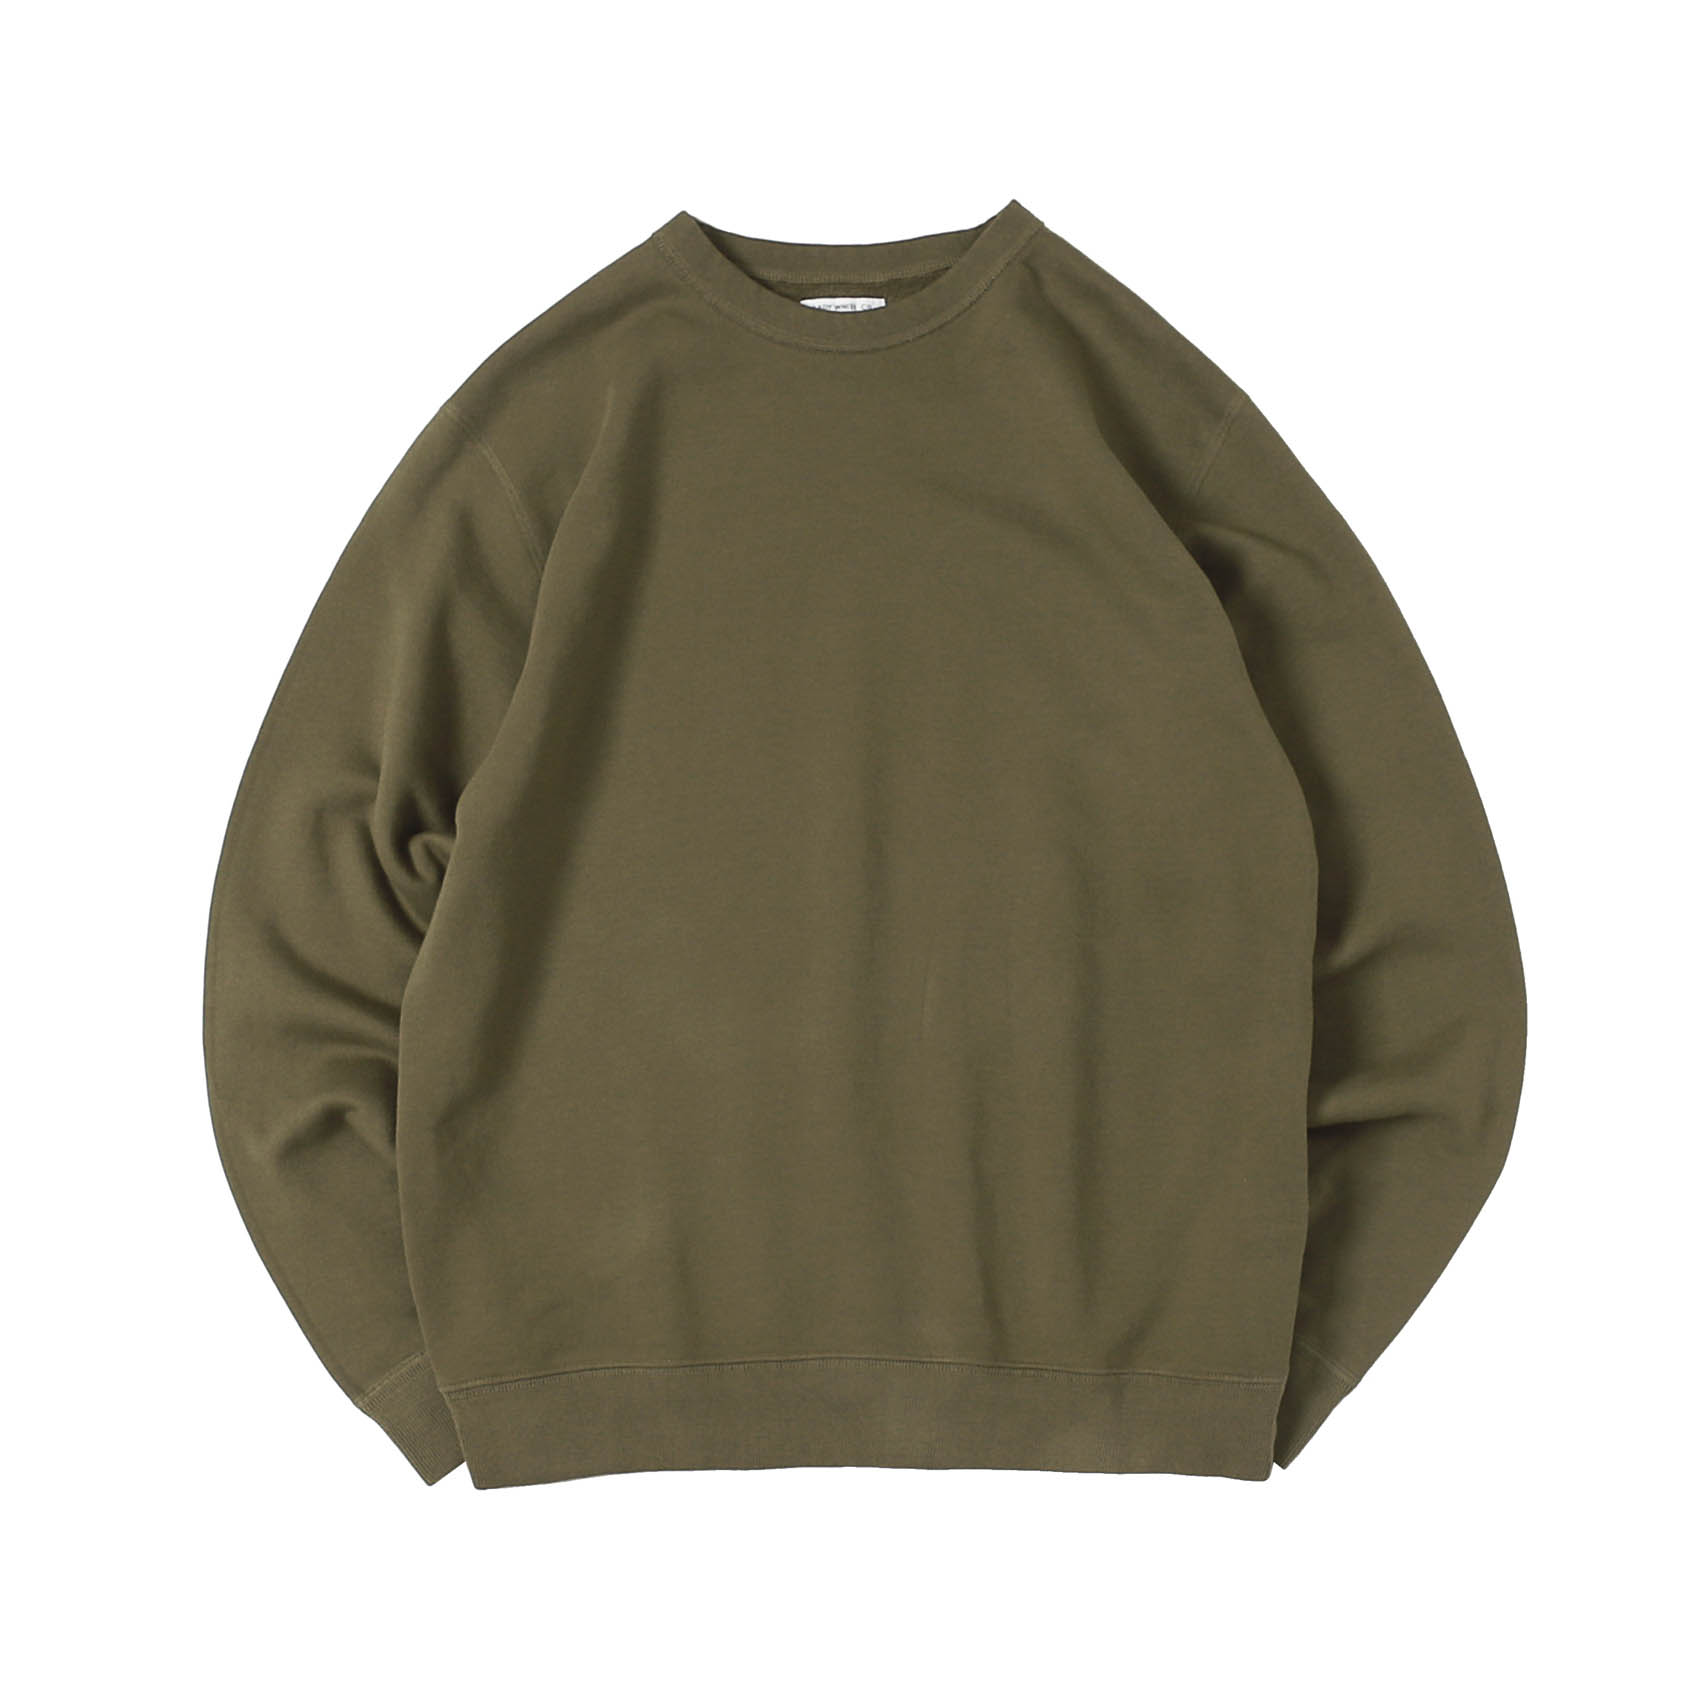 44 FLEECE - EZ SAGE